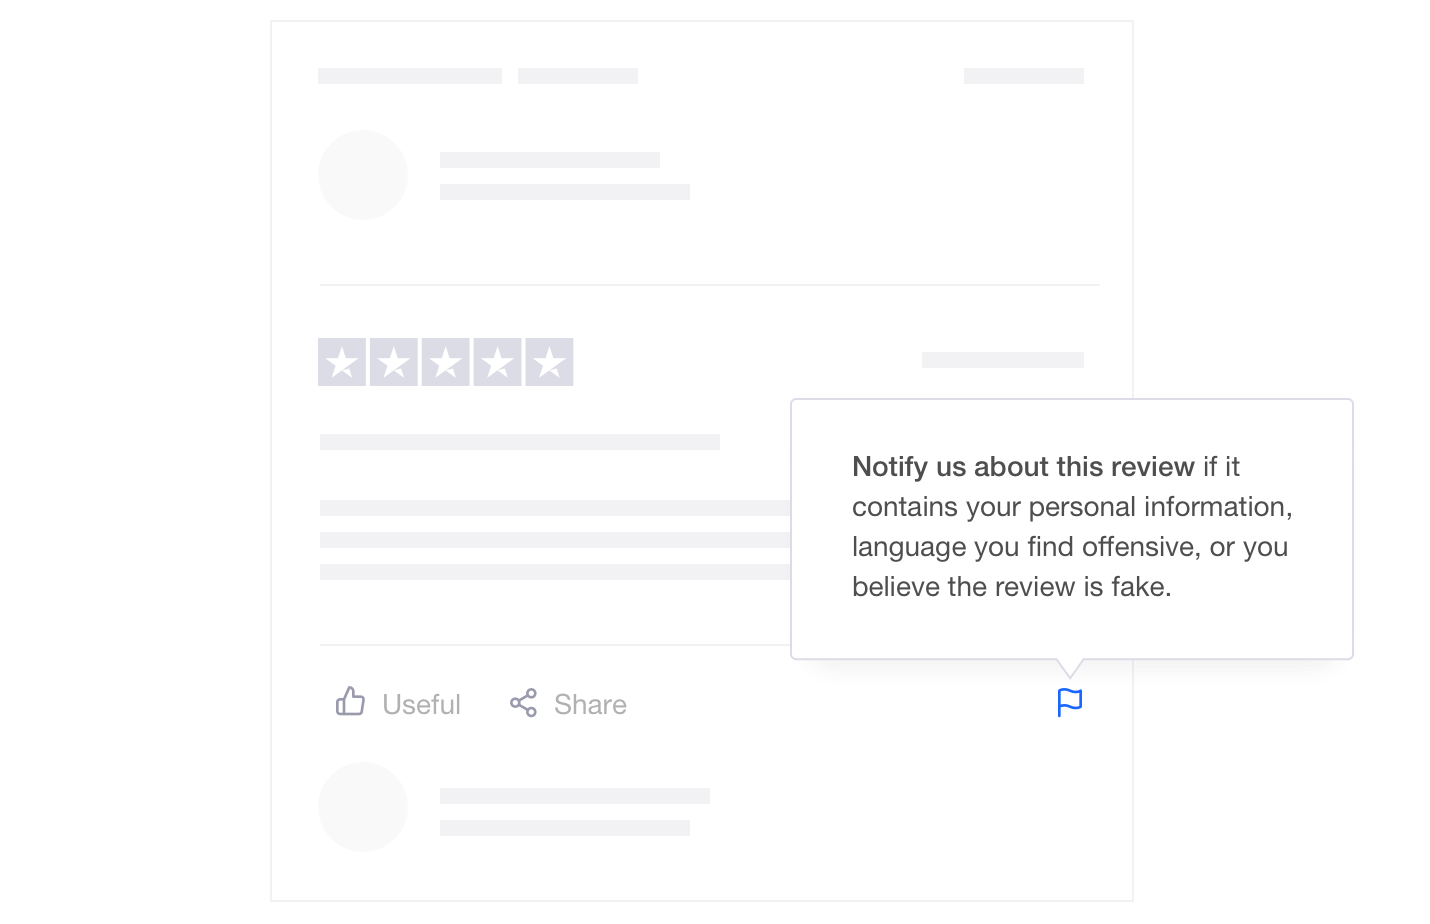 Product illustration showing how Trustpilot users can notify Trustpilot about reviews which contain personal information, offensive language, or which are believed to be fake.